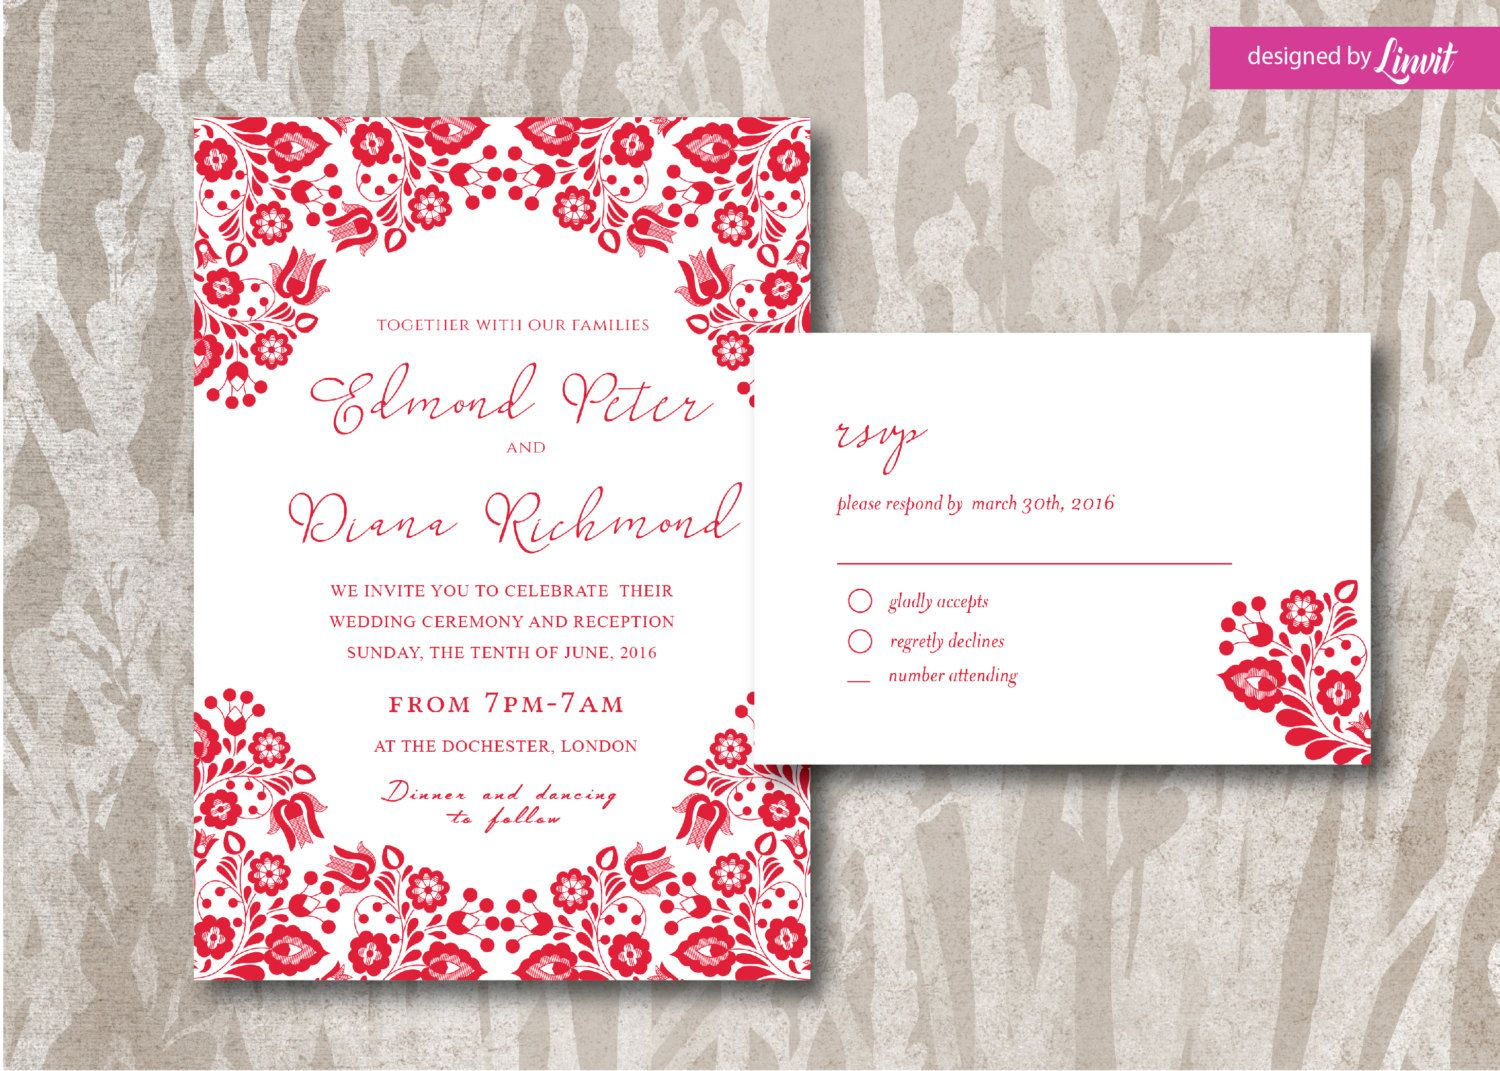 Floral Wedding InvitationDigital wedding invitationPrintable